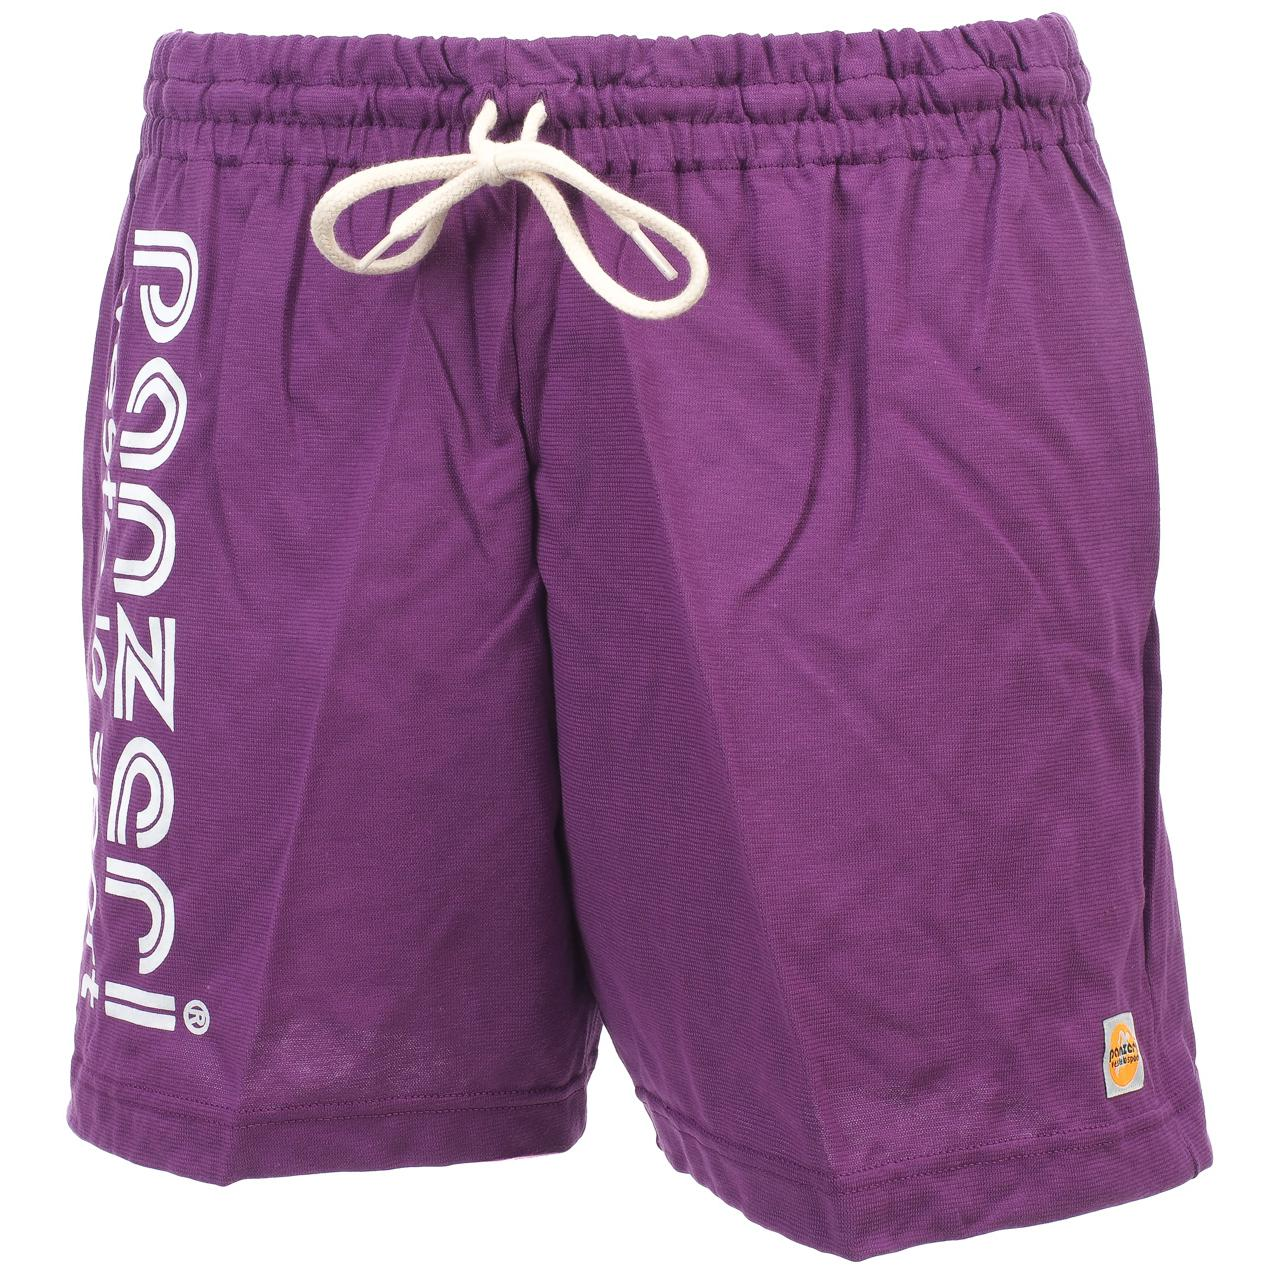 Shorts-Multi-Panzeri-Plain-a-Purple-Jersey-Shorts-Purple-30929-New